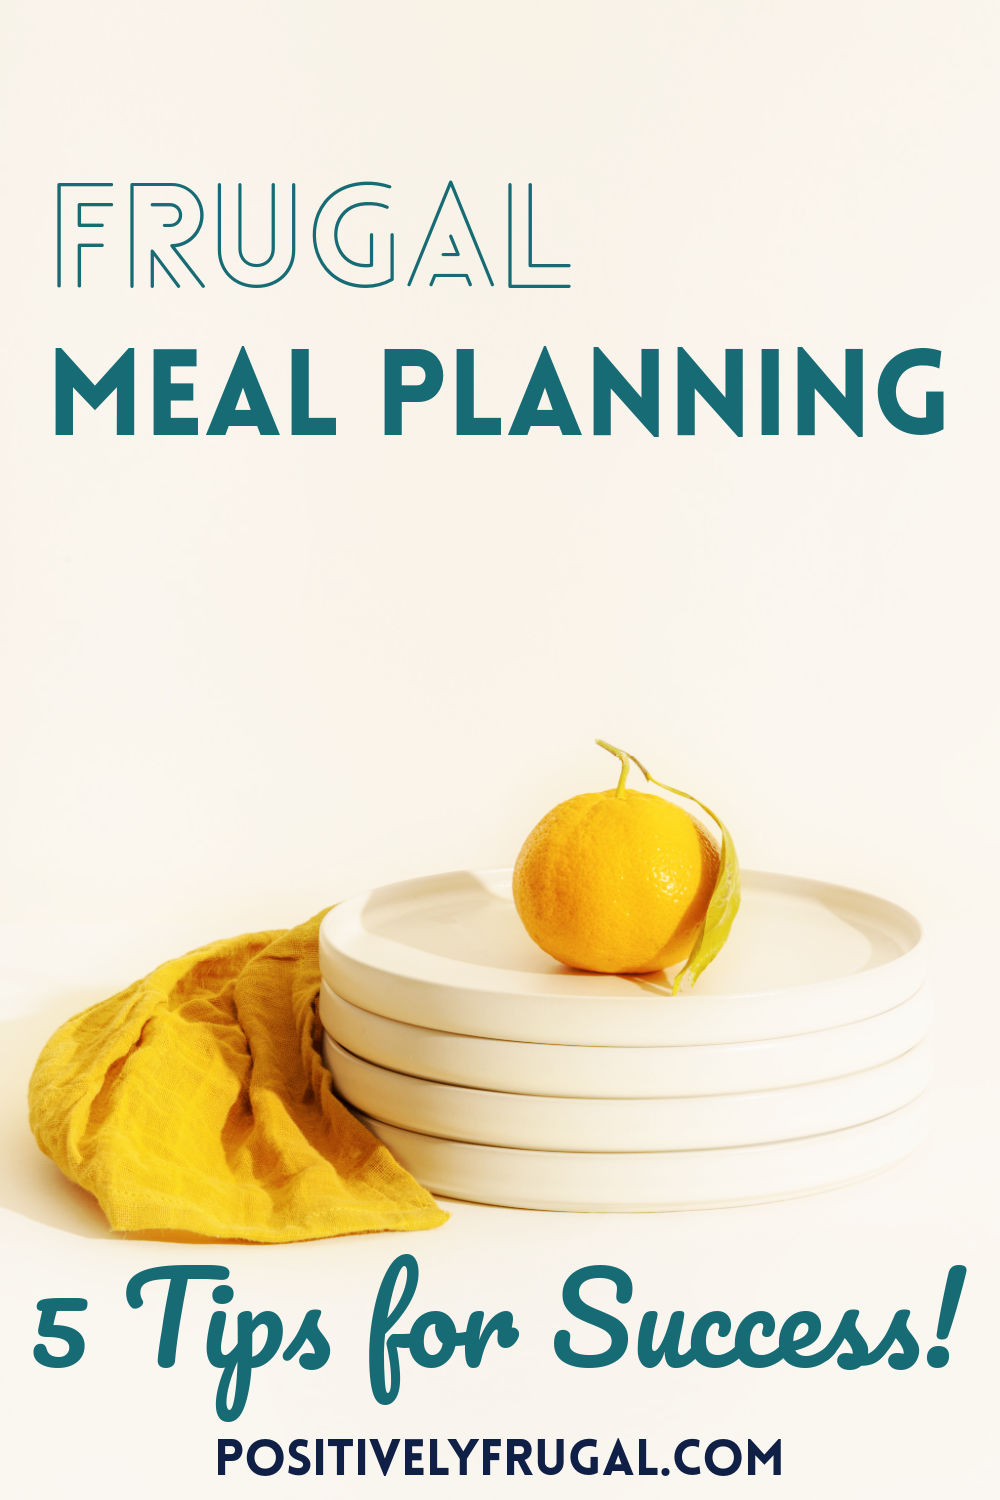 Frugal Meal Planning Tips for Success by PositivelyFrugal.com